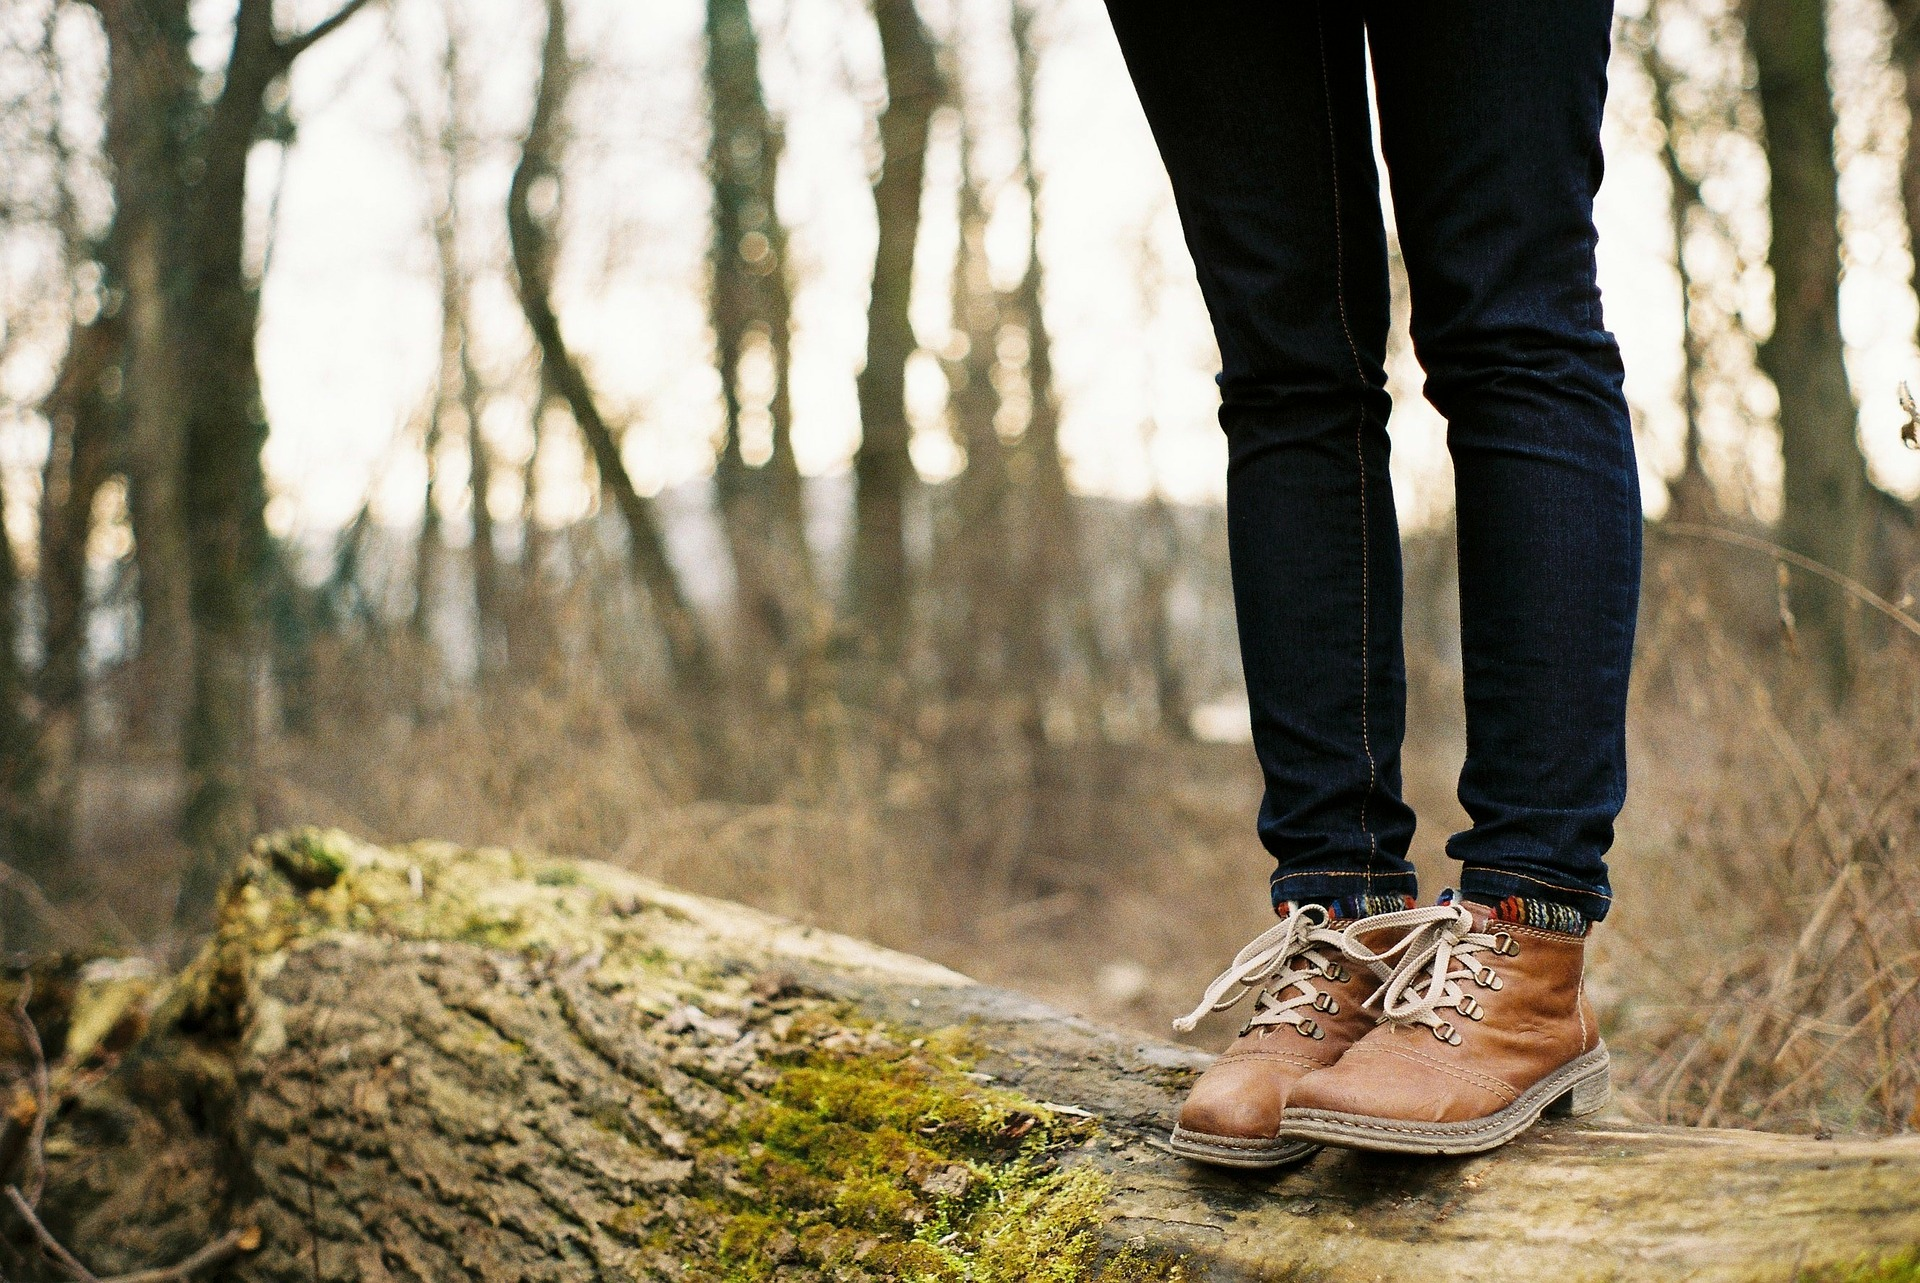 girl with boots standing on a log in the middle of the woods alone